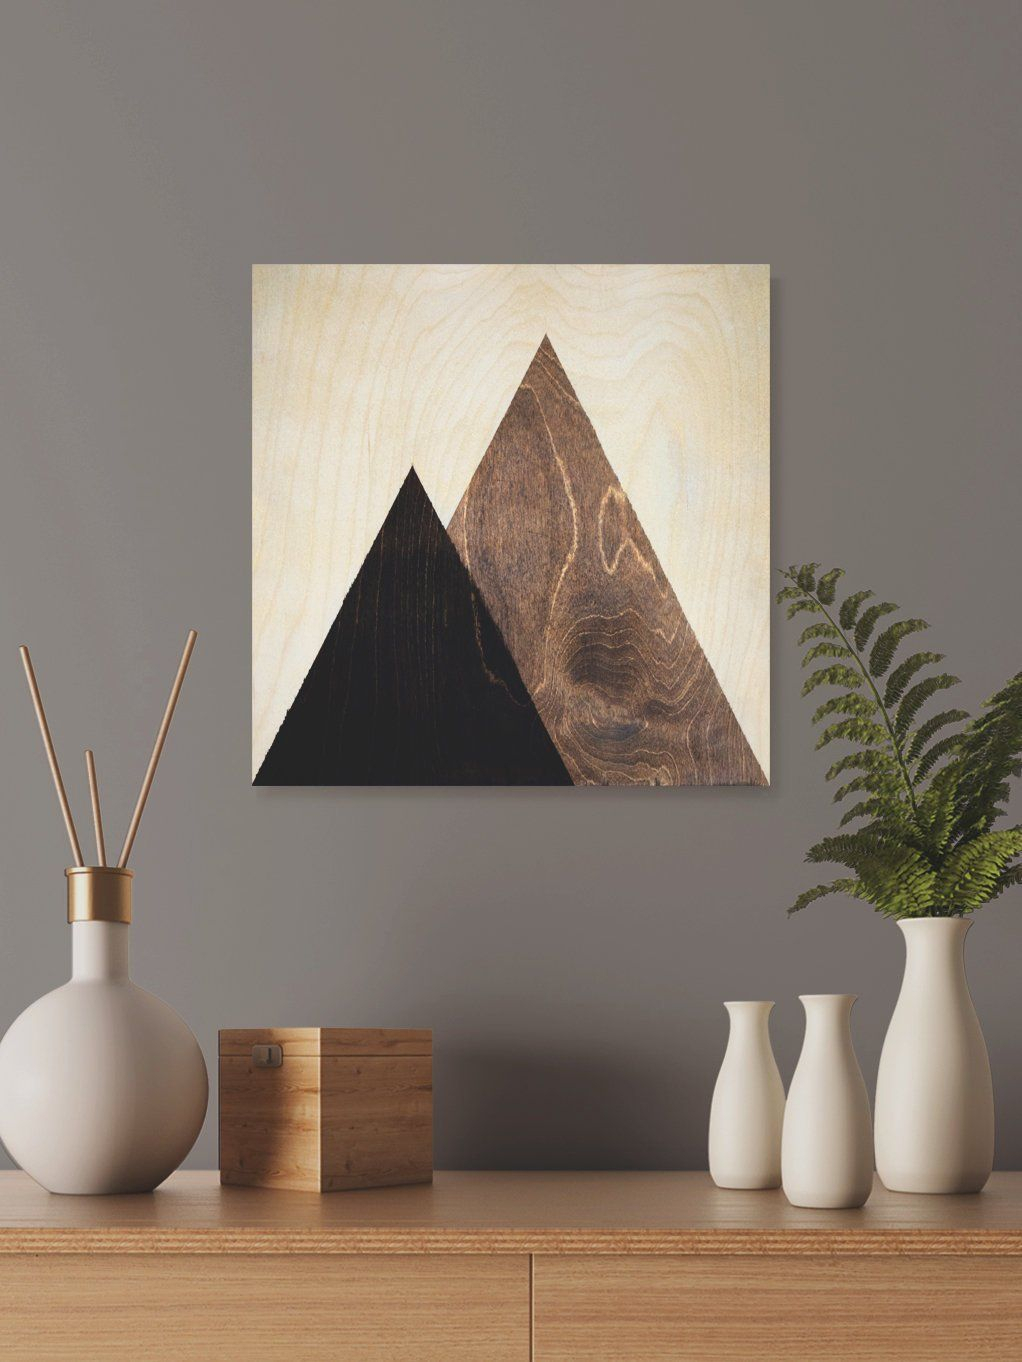 Contemporary Mountain Wall Decor, Dorm Wall Hanging Gift Inside Contemporary Geometric Wall Decor (View 11 of 30)